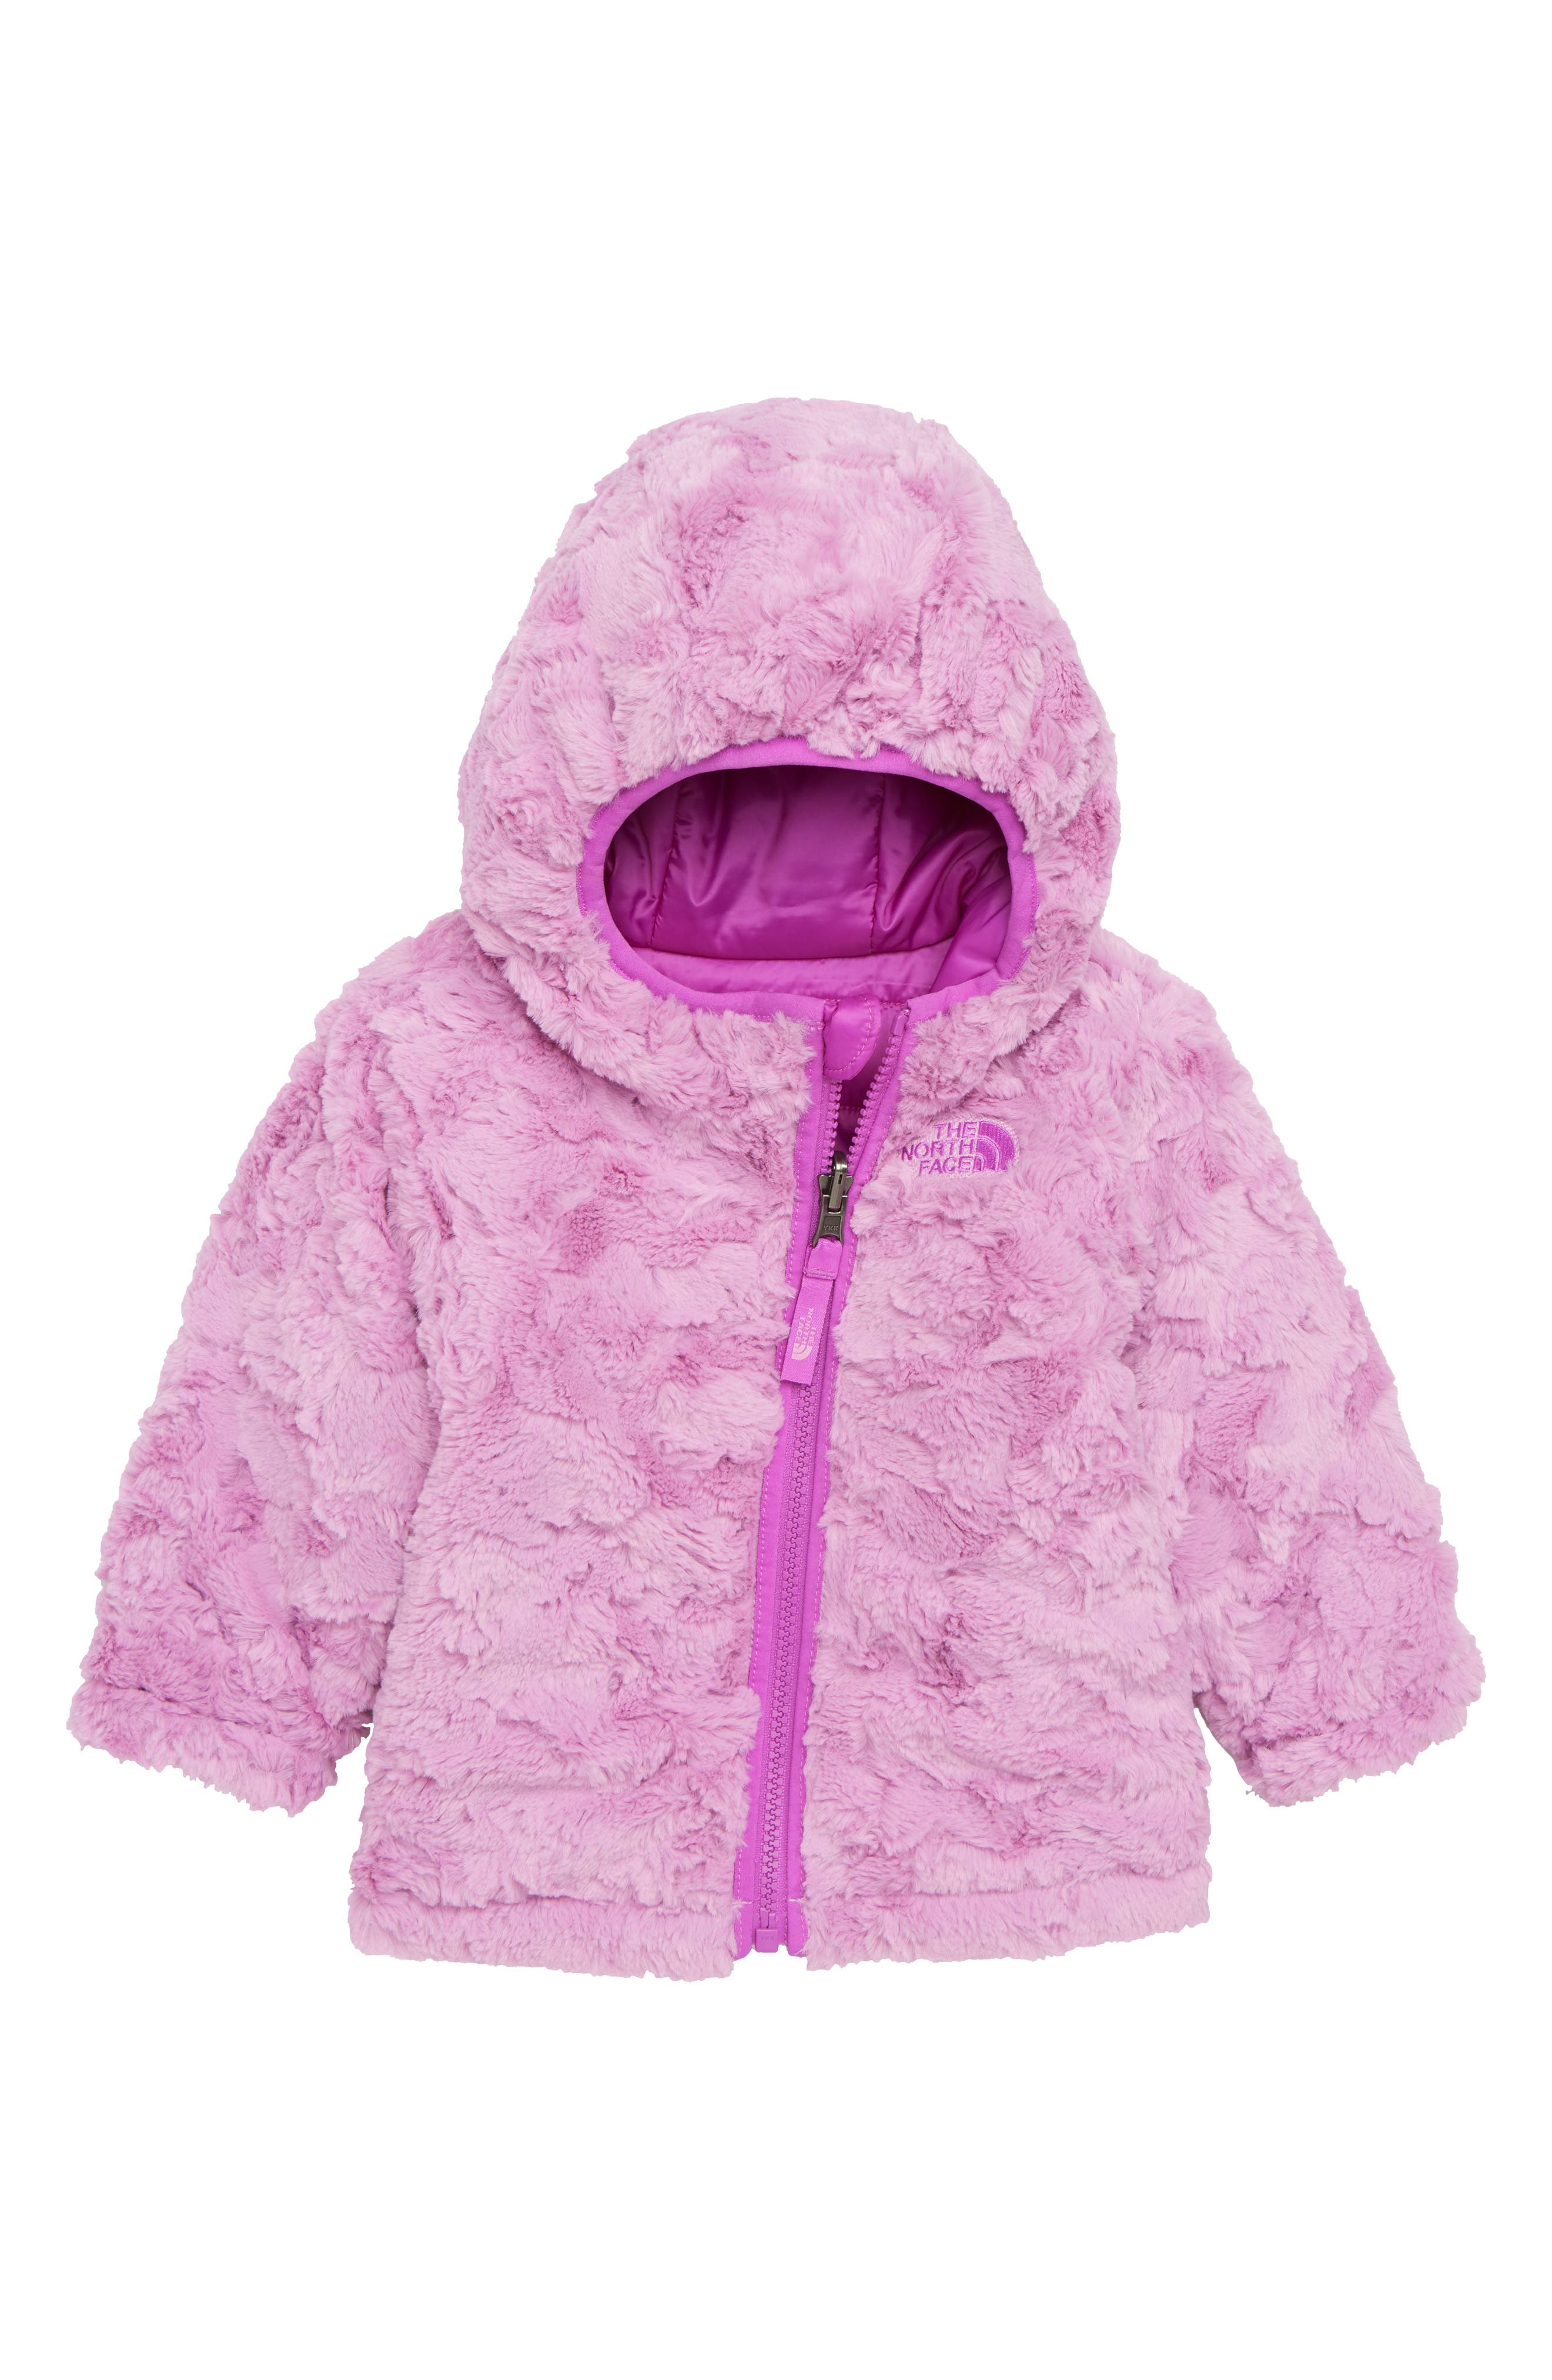 THE NORTH FACE,                             Mossbud Reversible Water Repellent Heatseeker<sup>™</sup> Insulated Jacket,                             Alternate thumbnail 2, color,                             510